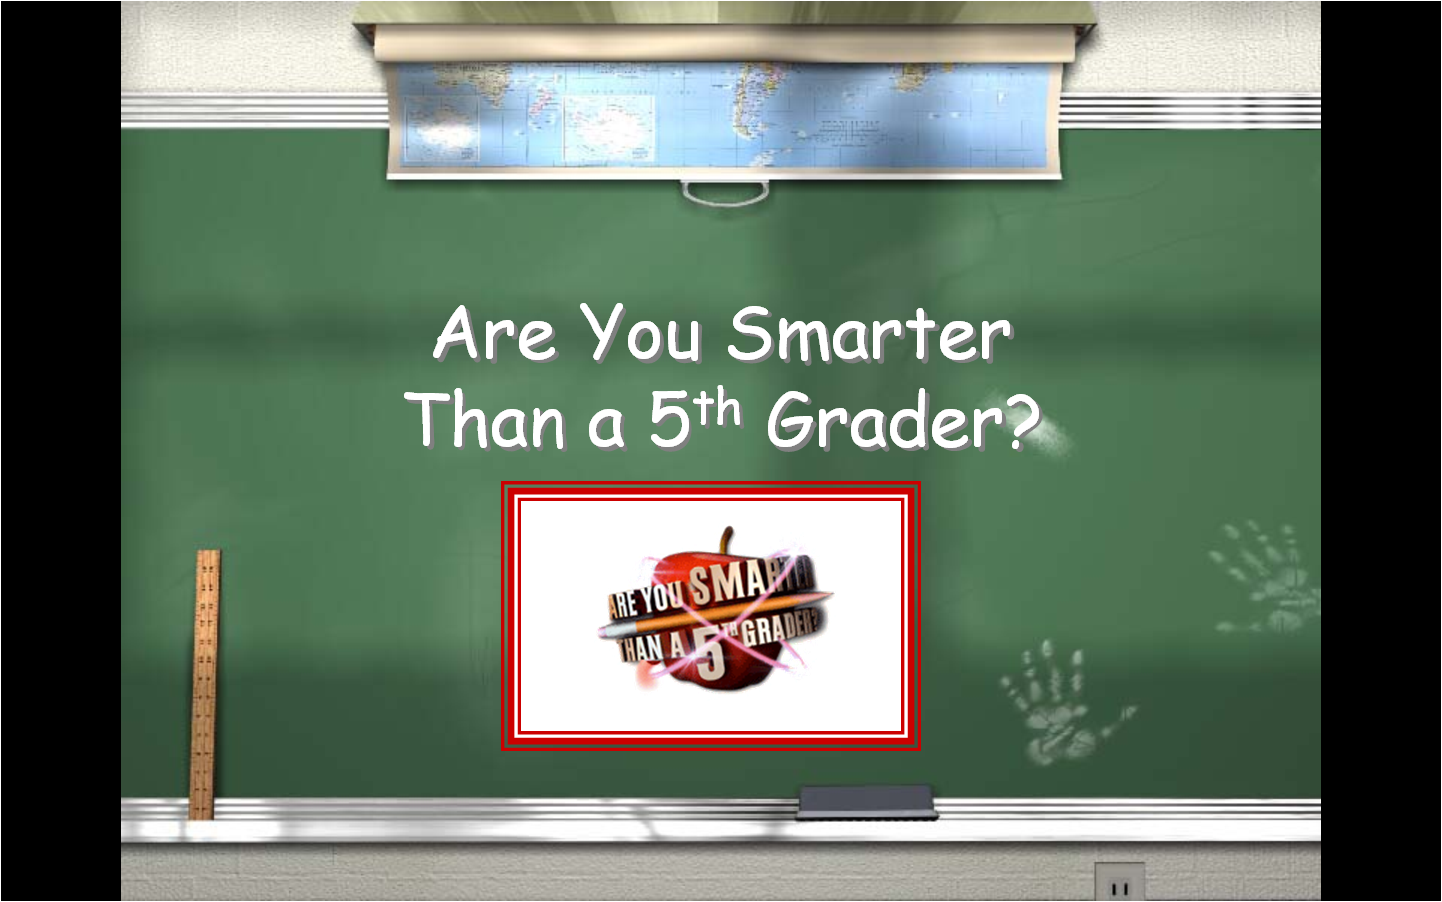 Are You Smarter than a 5th Grader? (Chinese game show ...